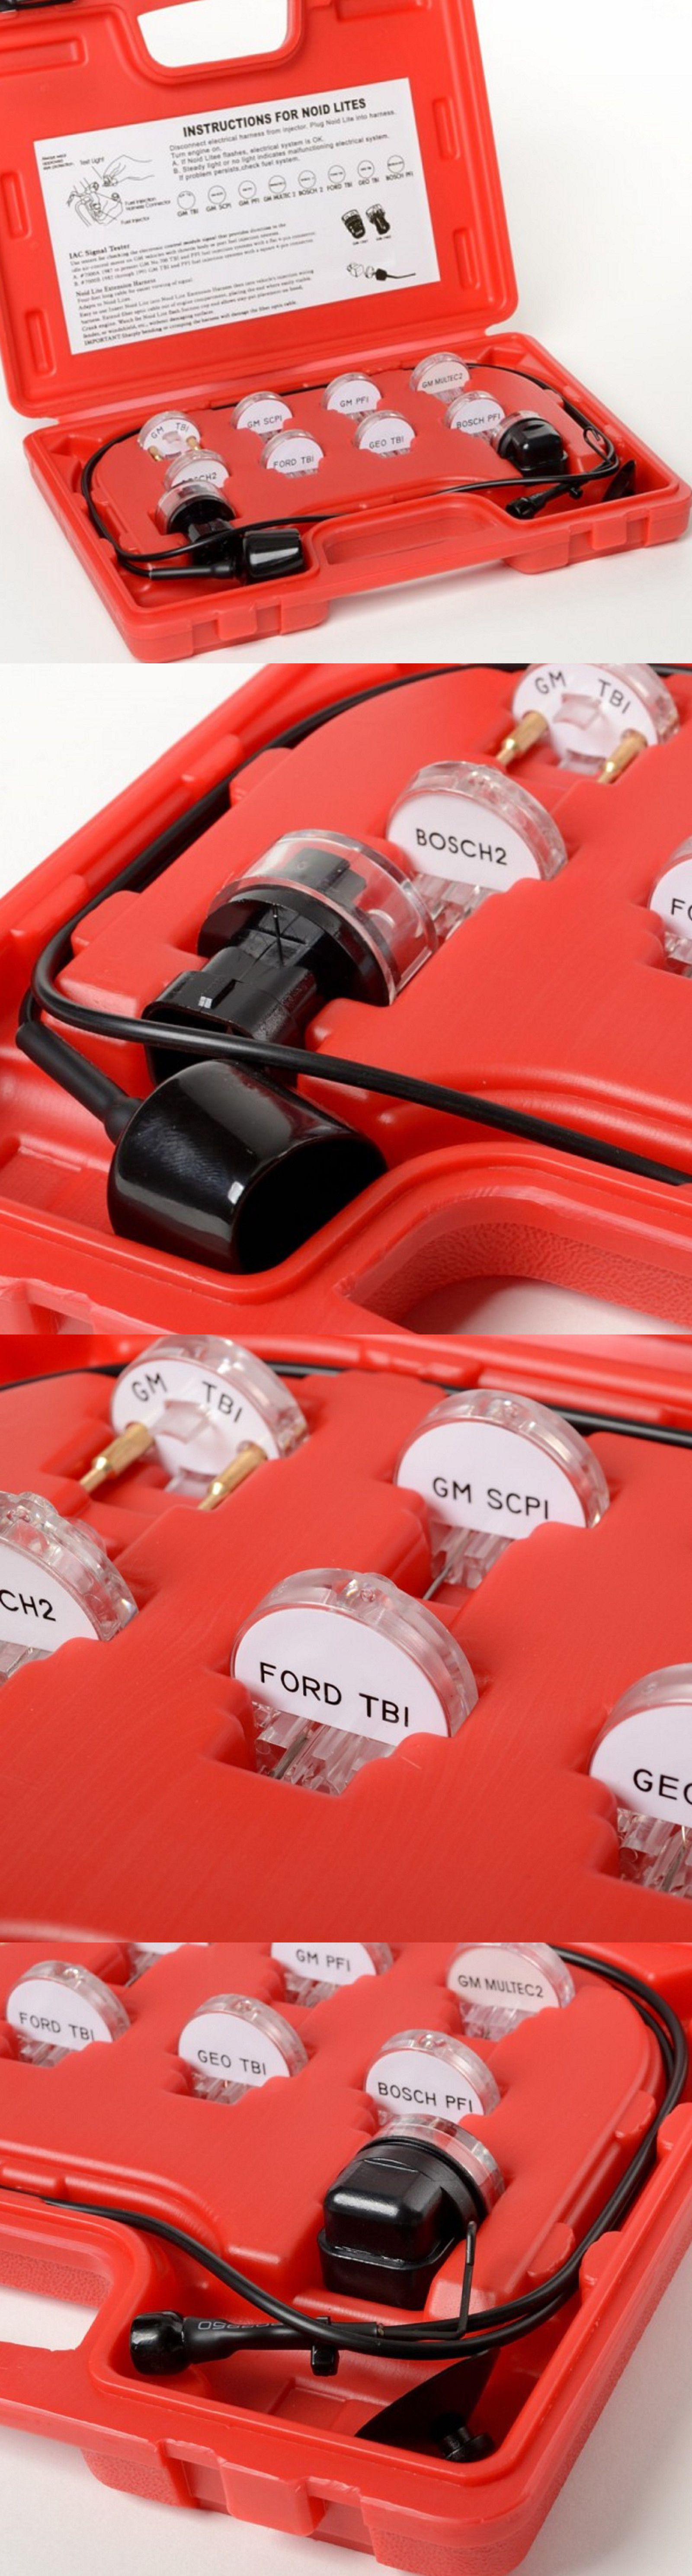 how to test fuel injectors with test light